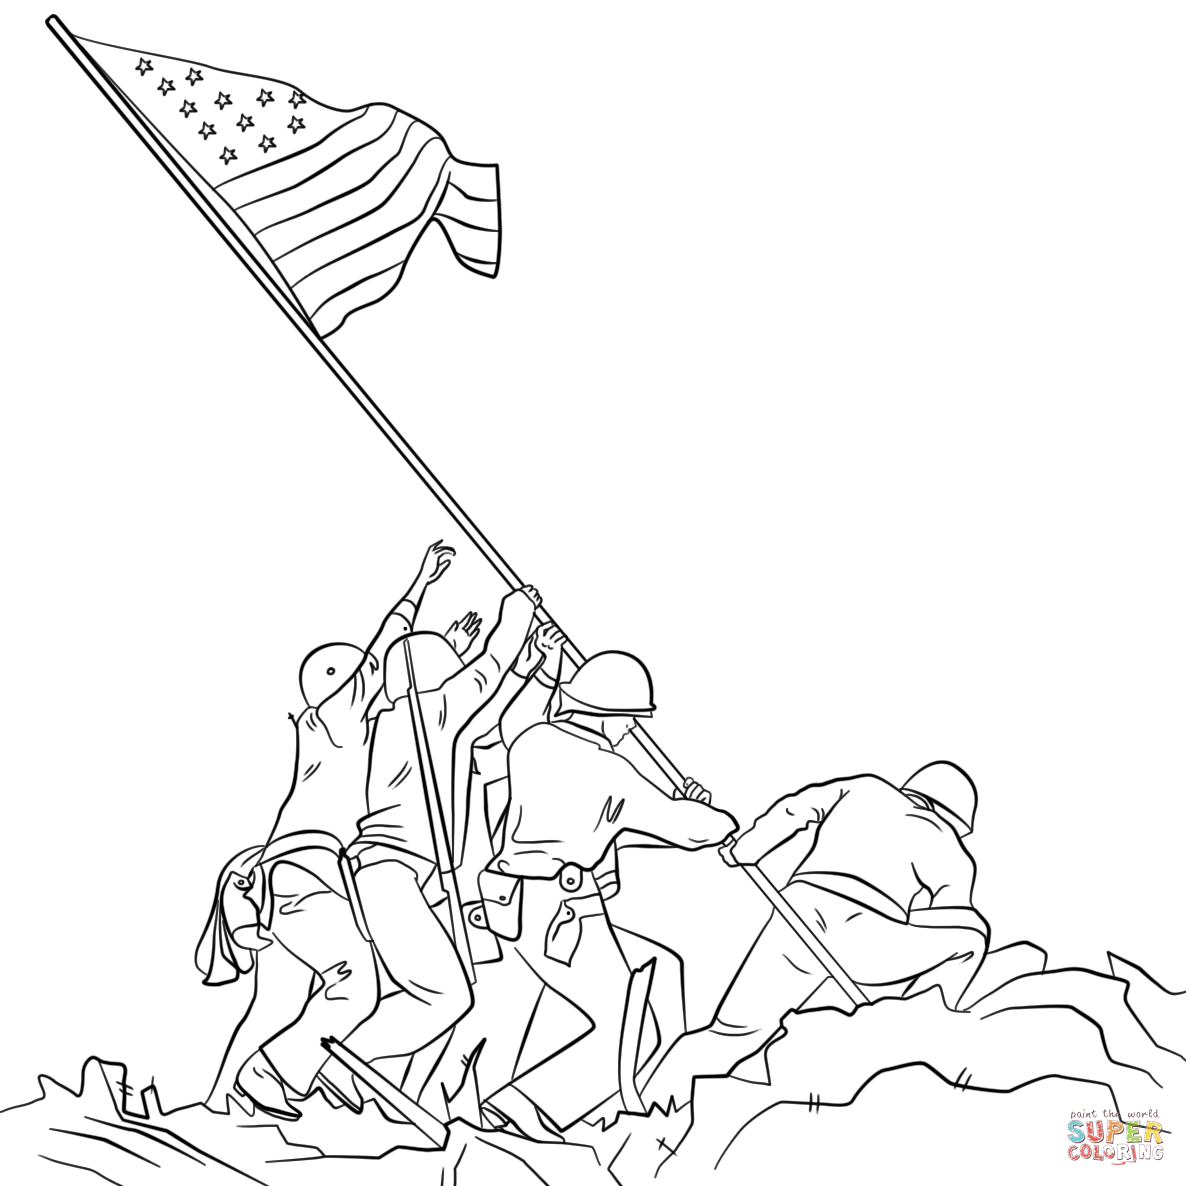 1186x1186 Unparalleled Free Veterans Day Coloring Pages Election Preschool